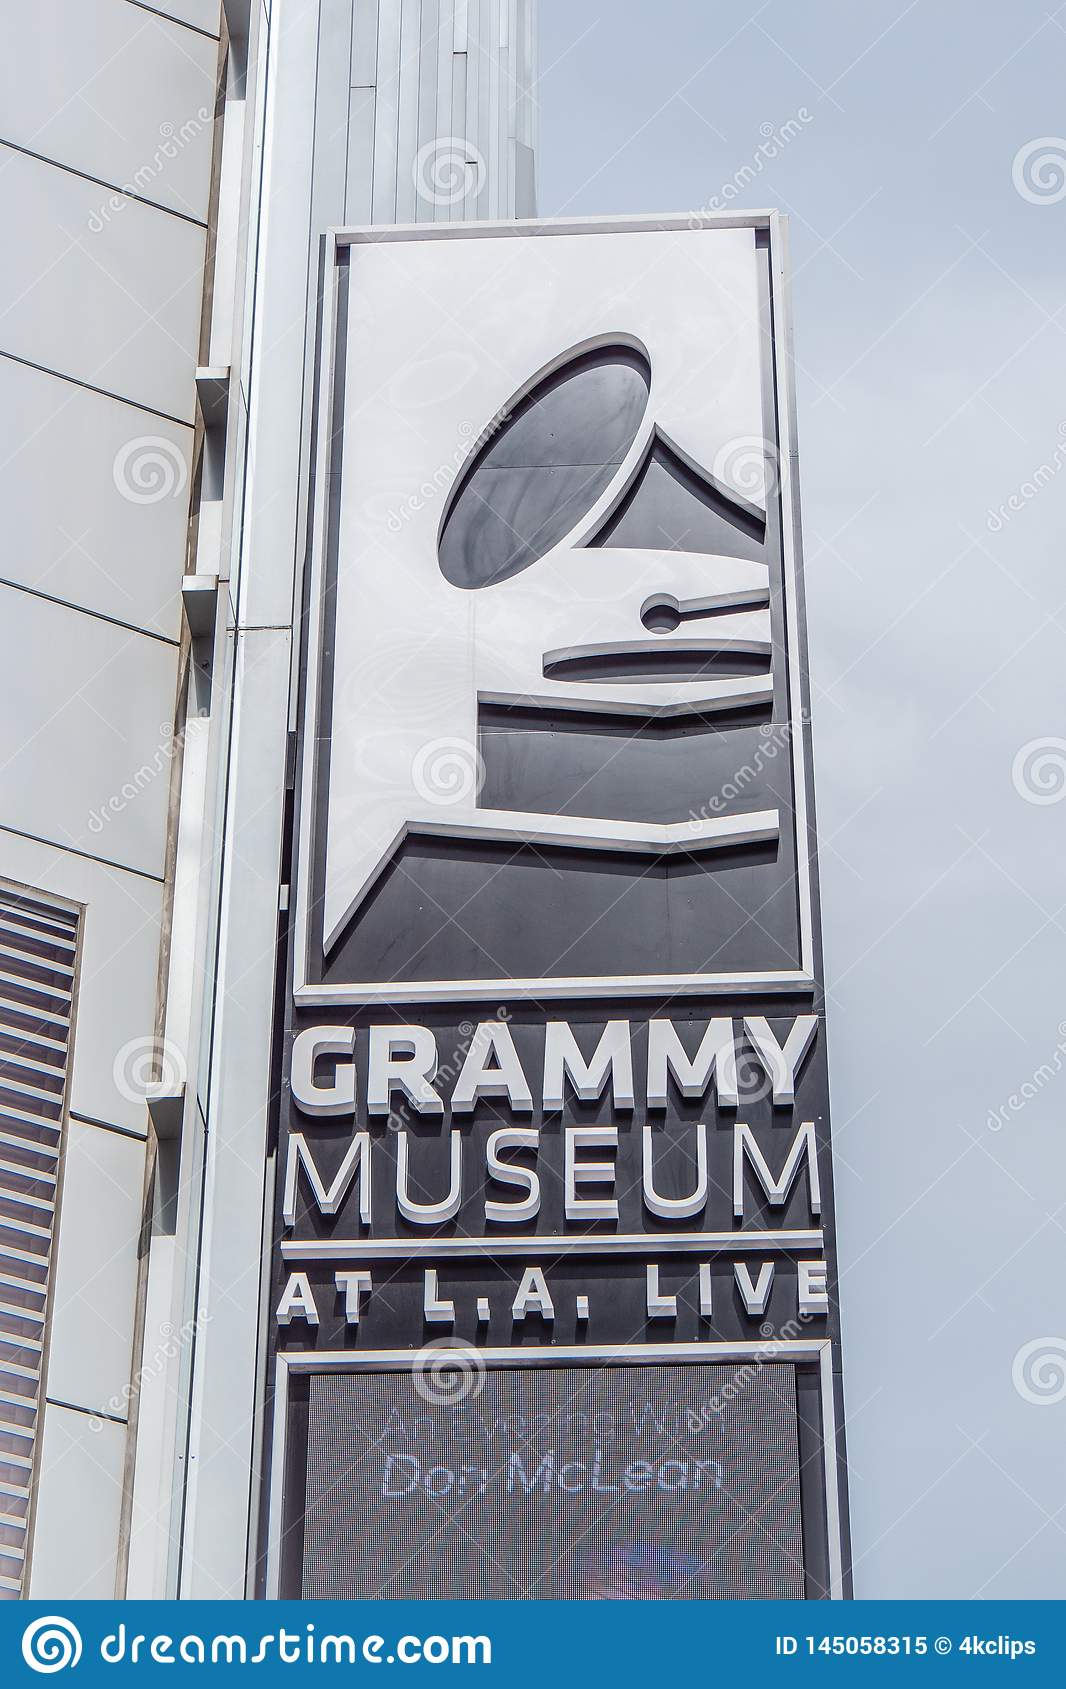 Grammy Museum in Los Angeles Downtown - CALIFORNIA, USA - MARCH 18, 2019